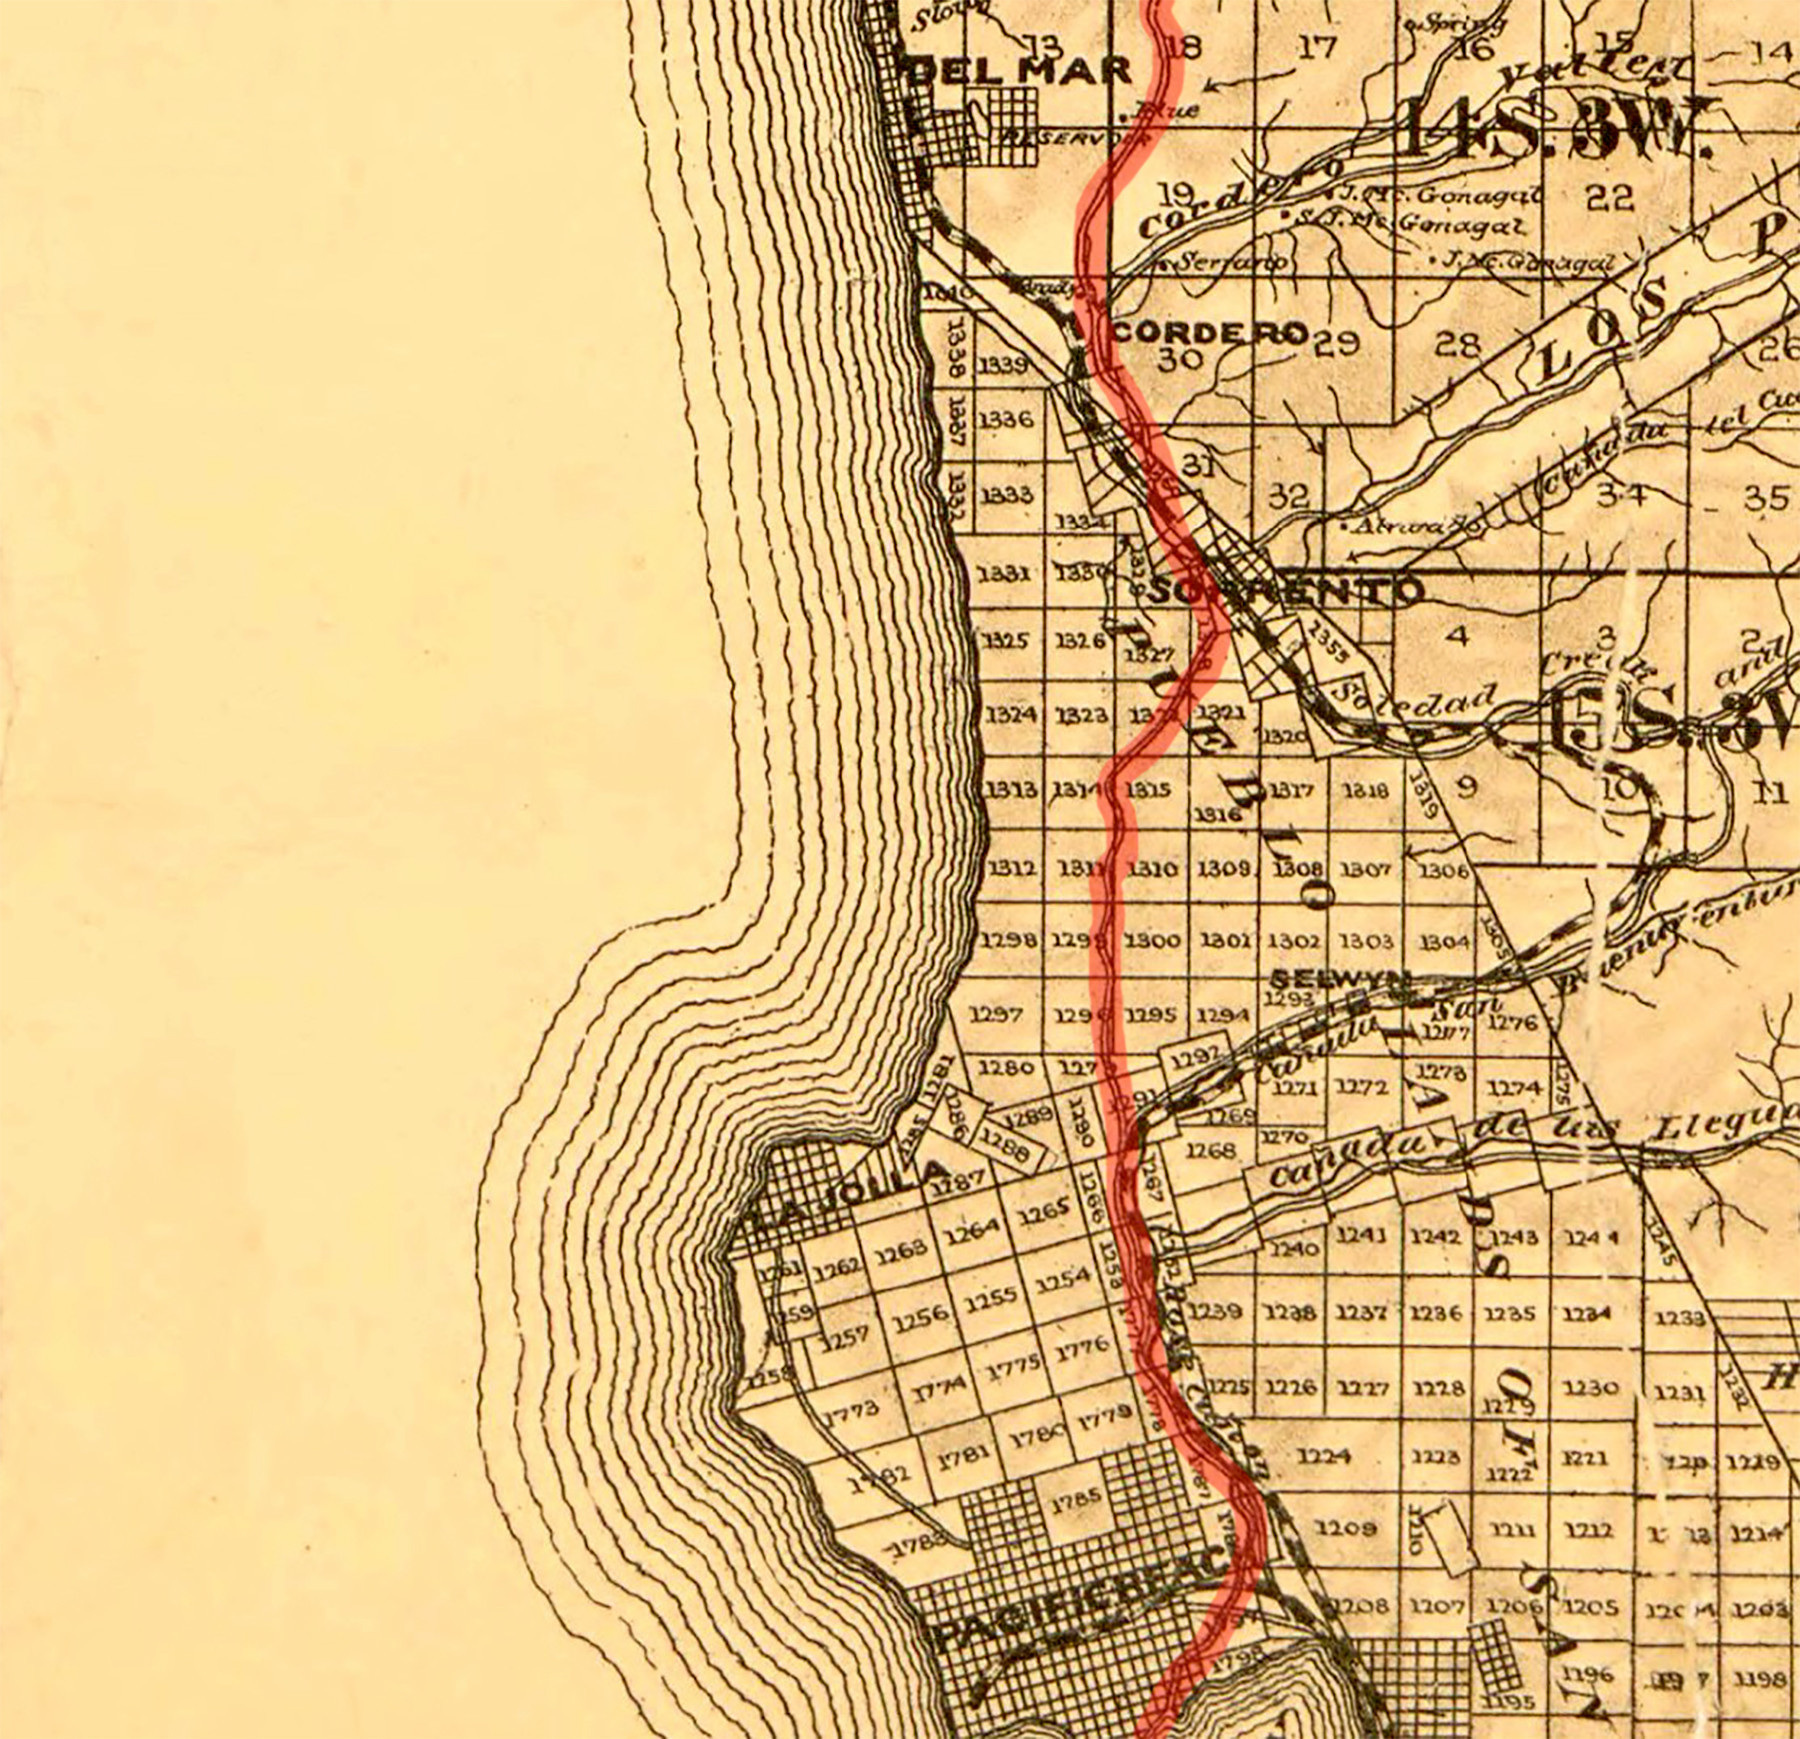 This official survey map of San Diego County was drawn in 1889 by T.D. Beasley, with the old stagecoach road highlighted in red by La Jolla Light graphic designer Daniel Lew.